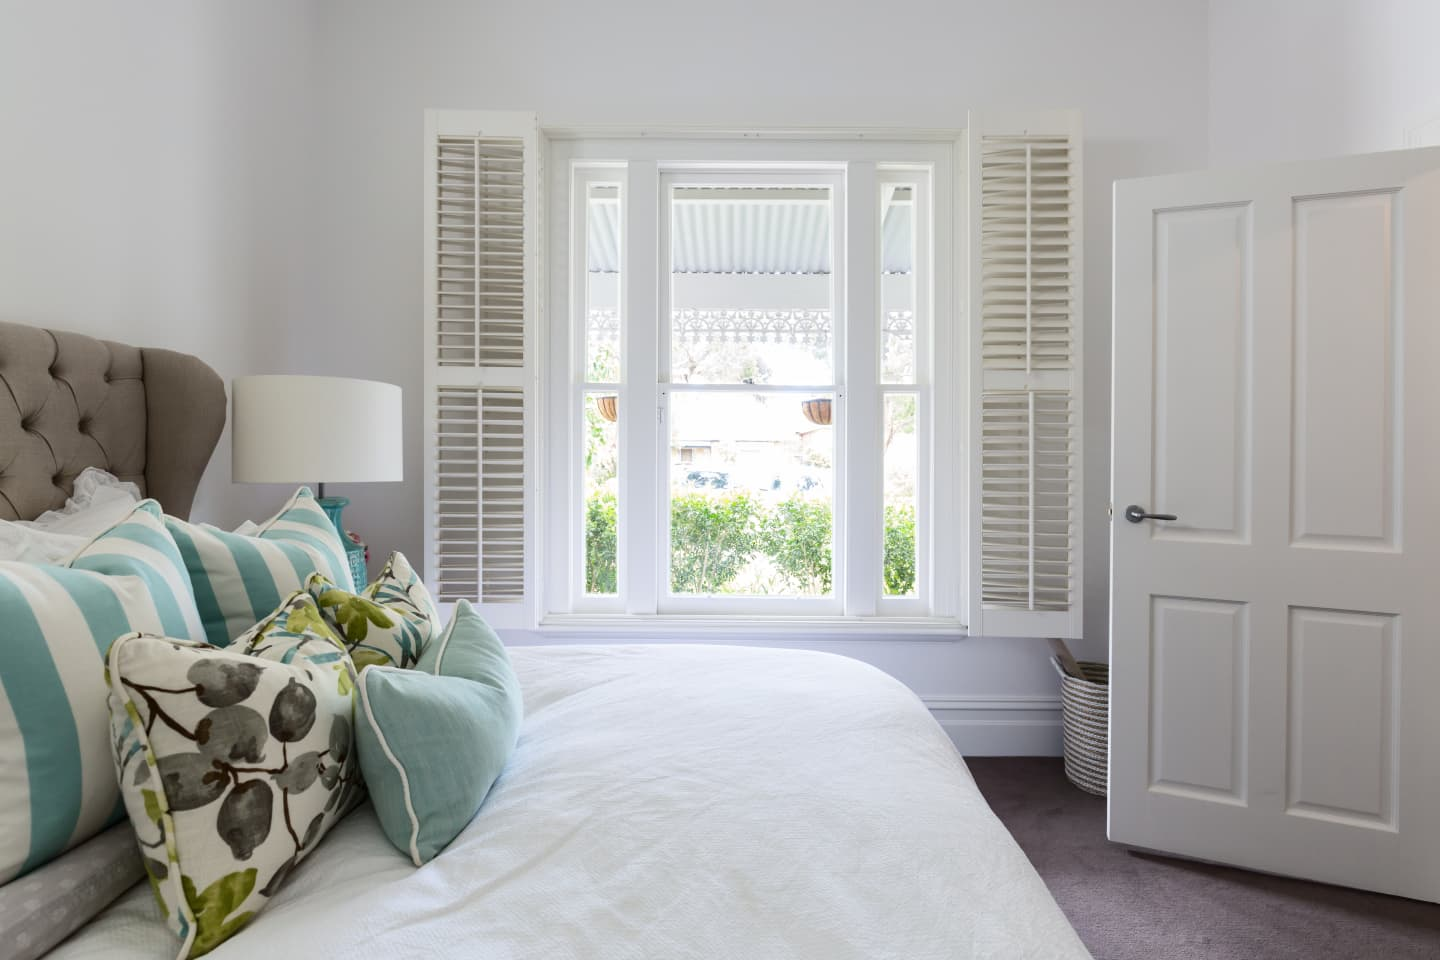 Bedroom with open white shutters